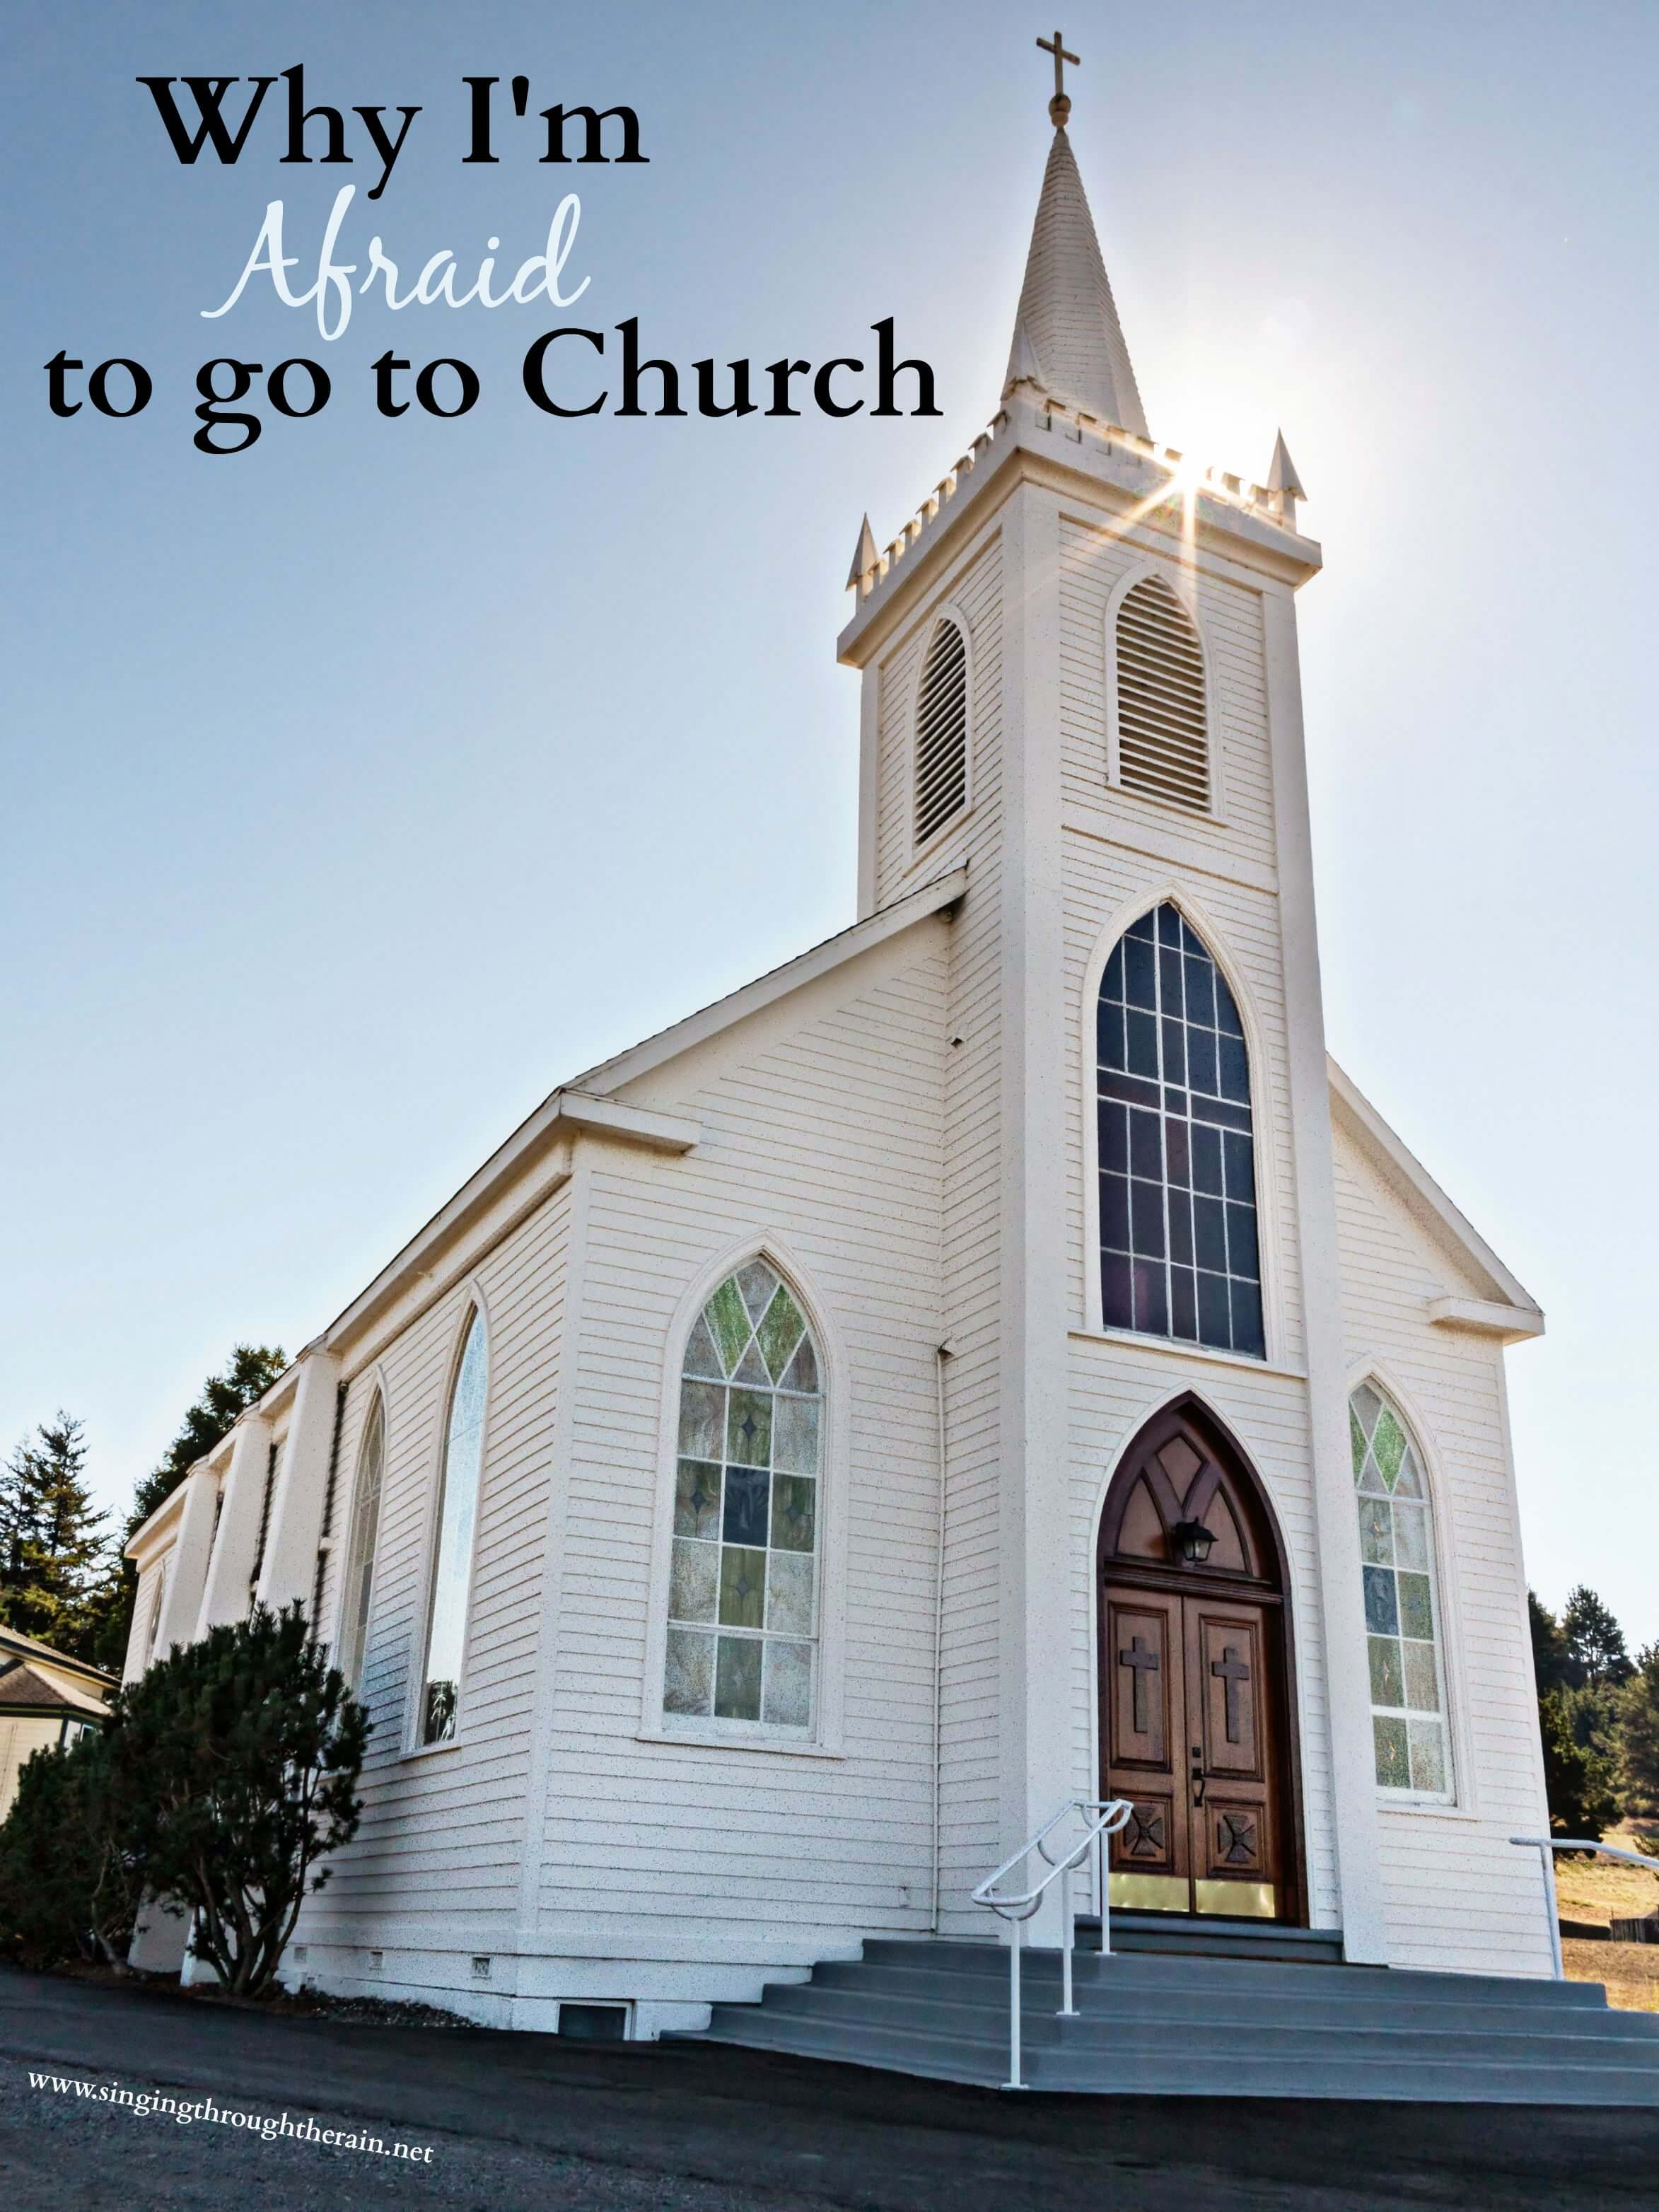 Why I'm Afraid to go to Church